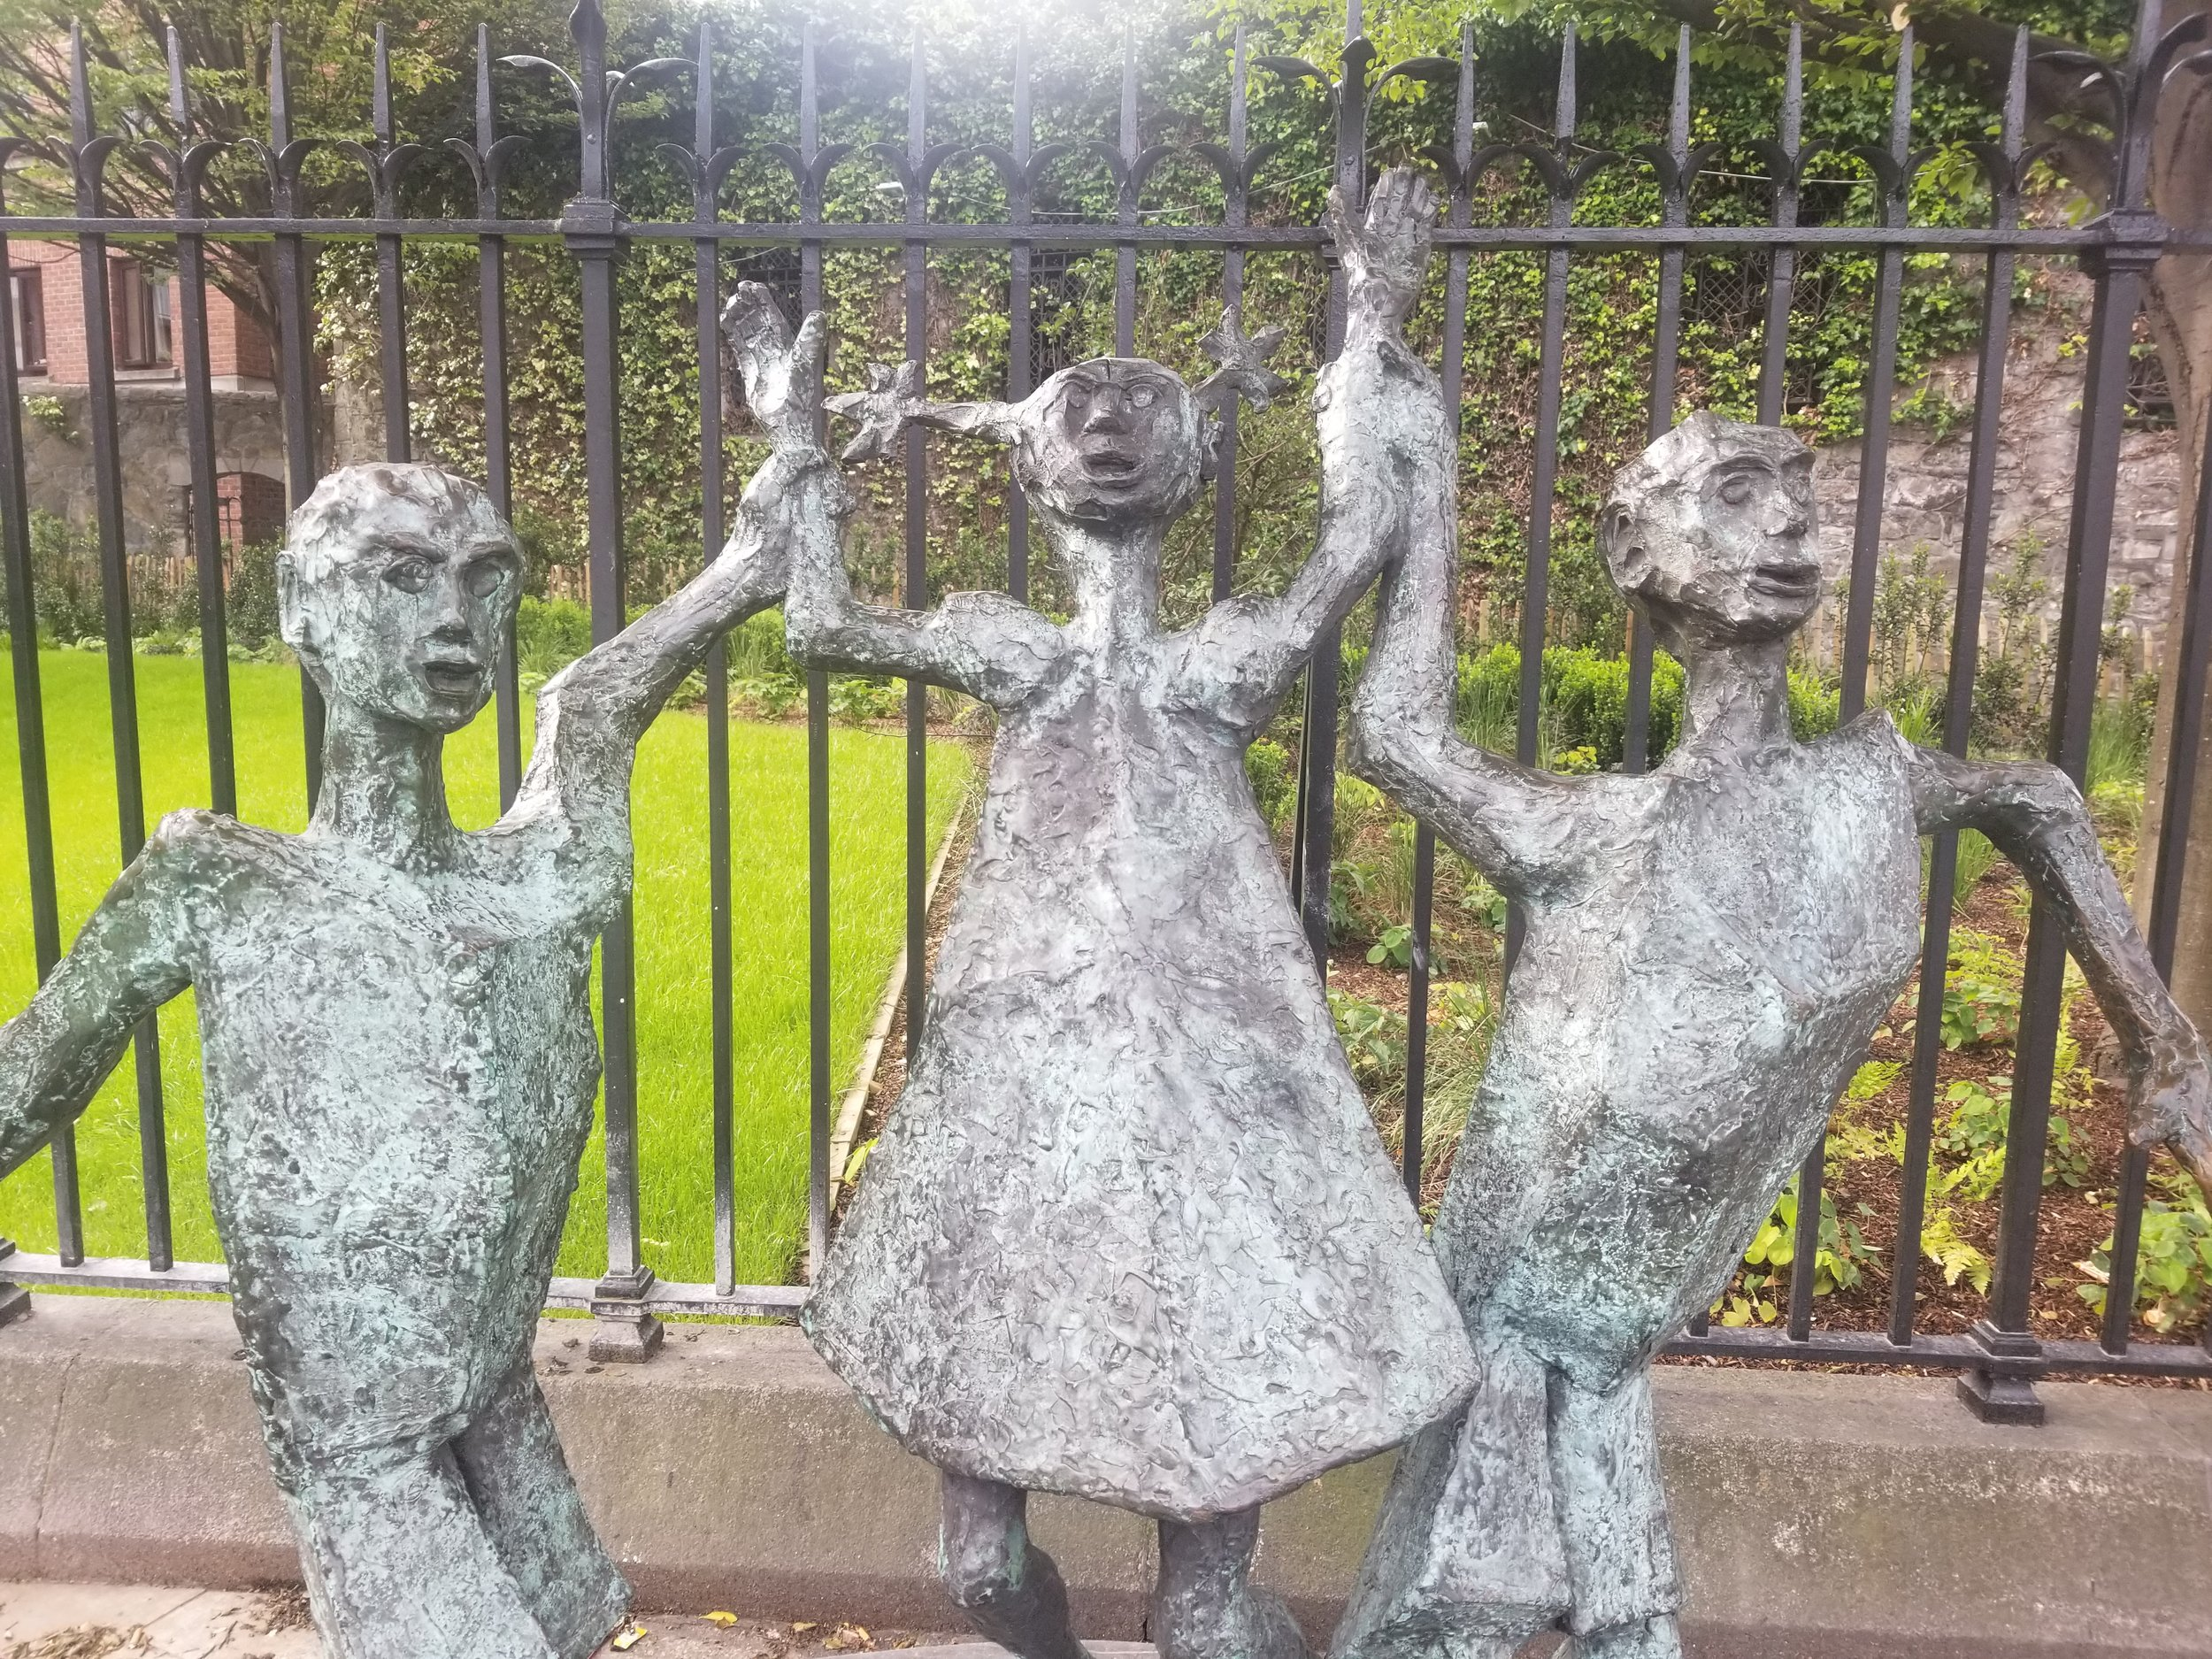 Today, the legacy of the famine can be seen worldwide through the spread of Irish culture, education, and familial ties in places such as the United States, Canada, and Australia. These statues can be found in a few places around the city of Dublin honoring the suffering of the Irish during this tragedy. Photo credit: Morrill, 2019